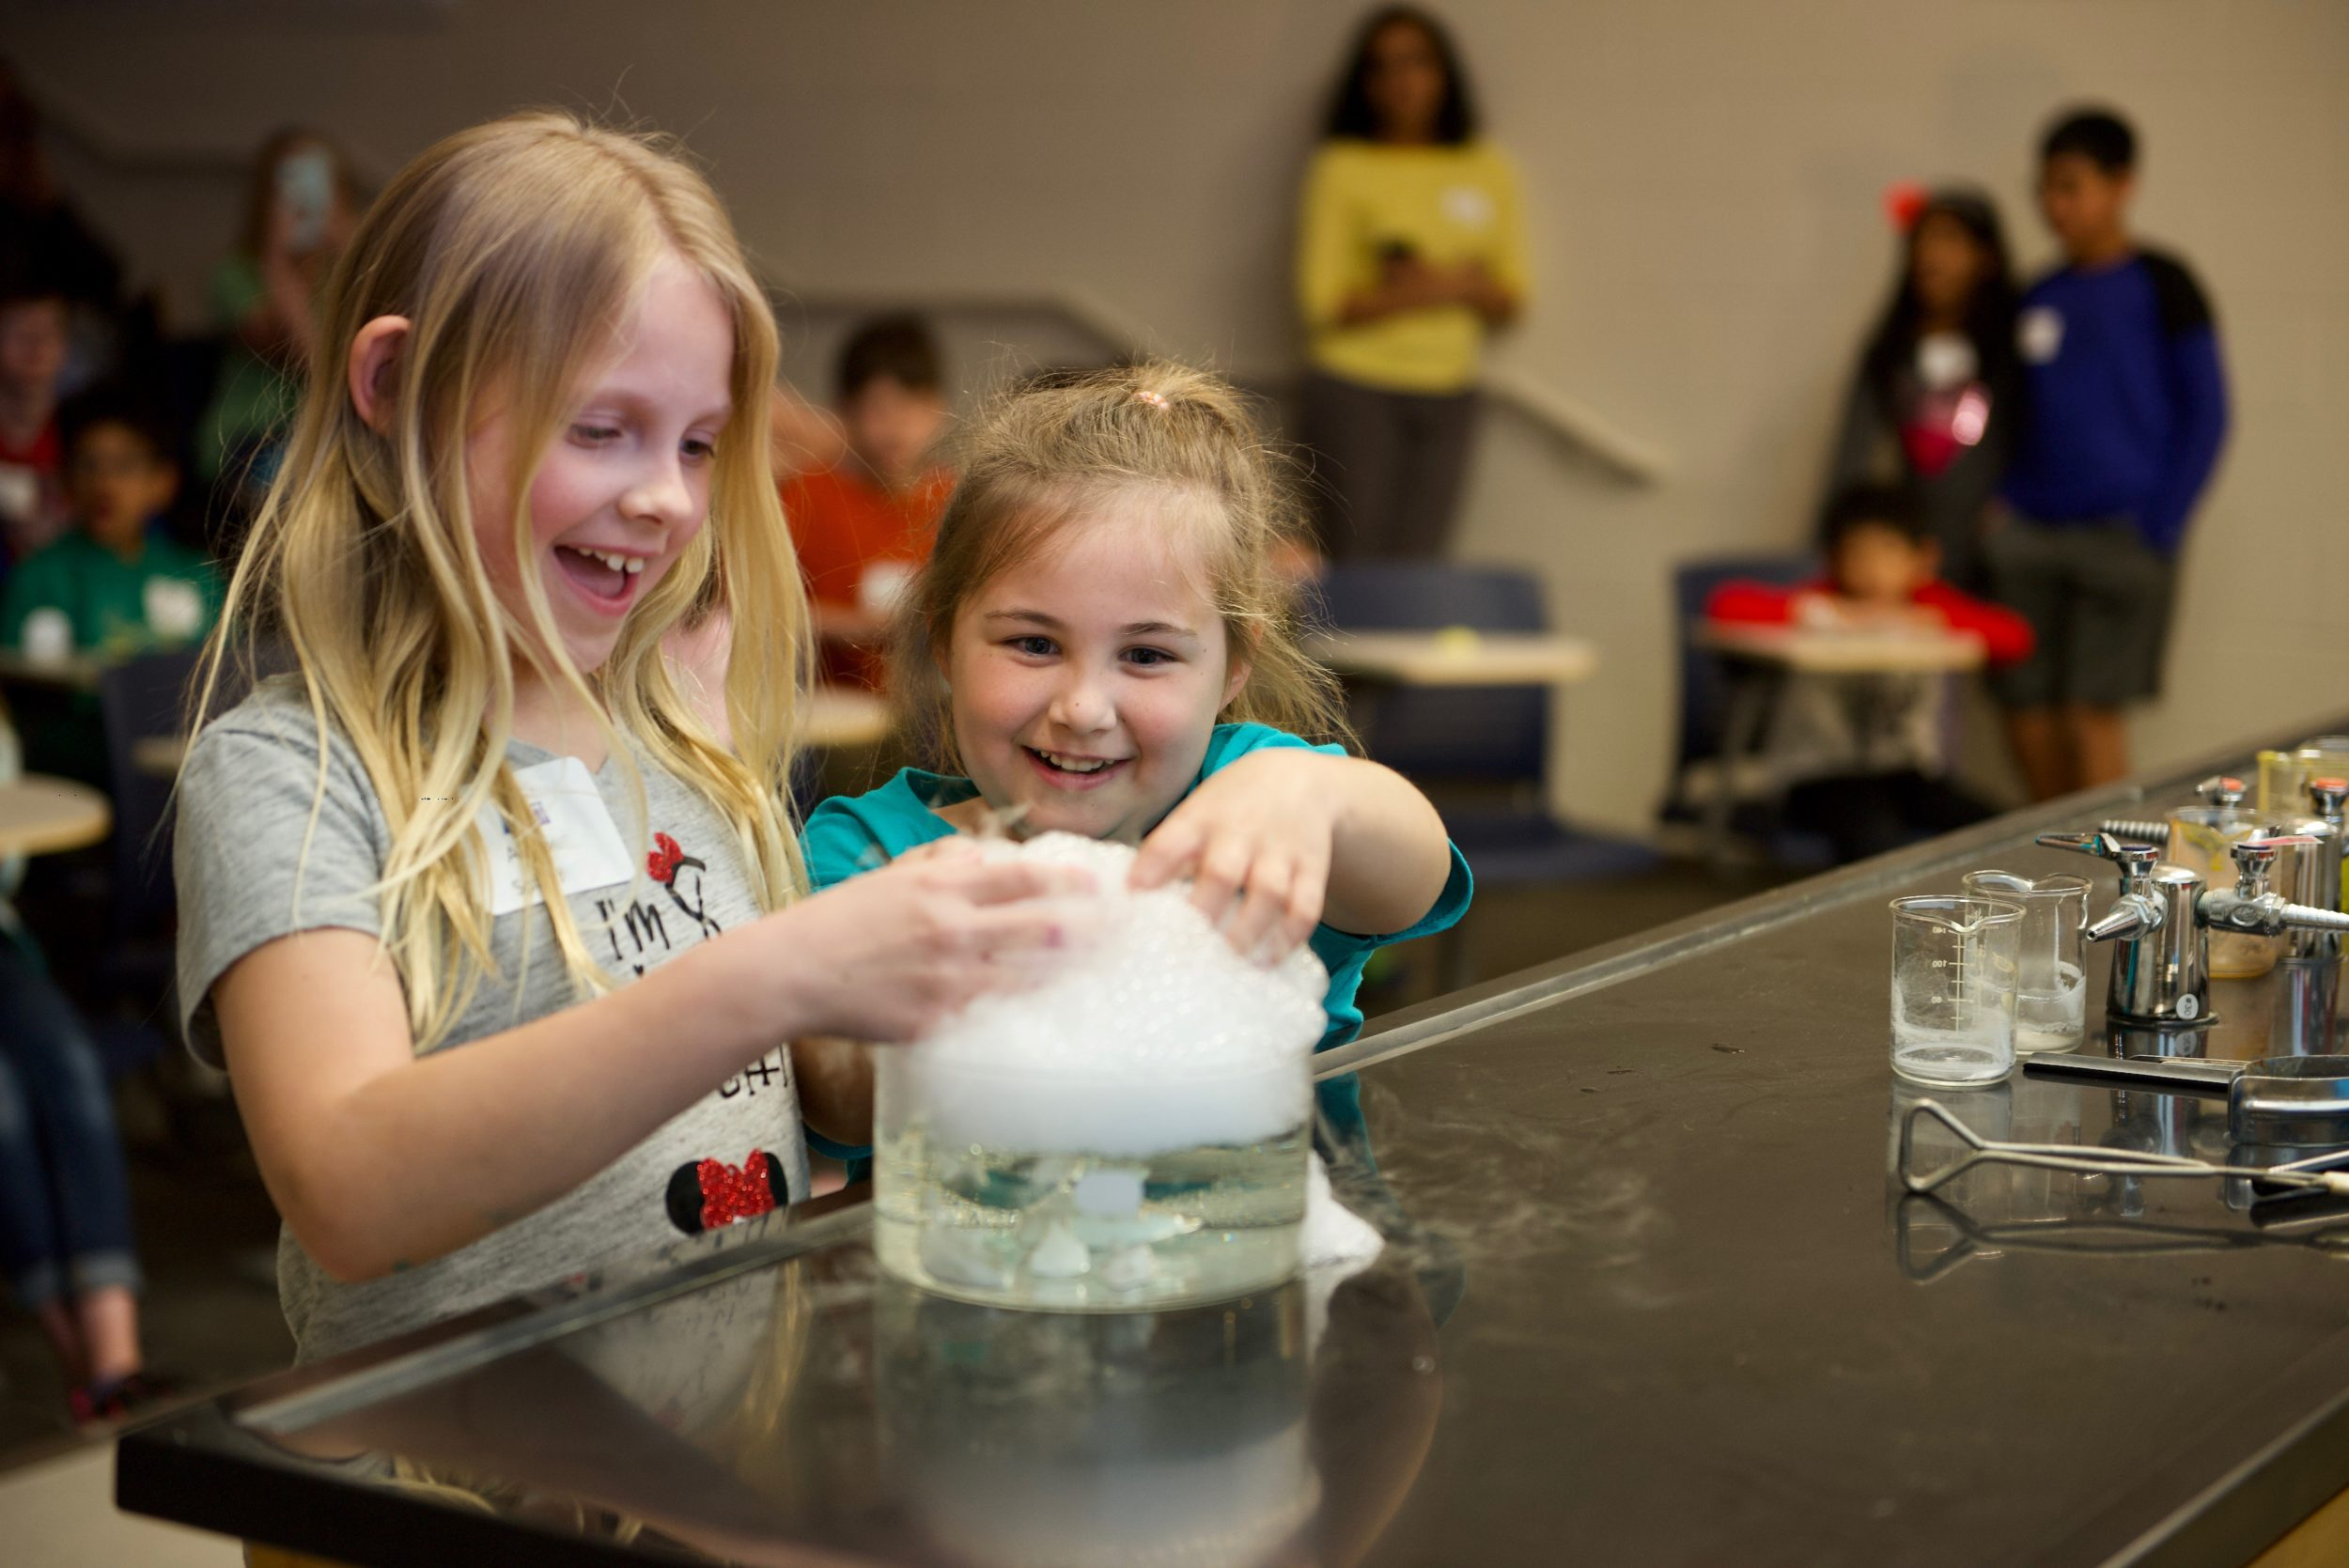 Children doing science experiments with bubbles